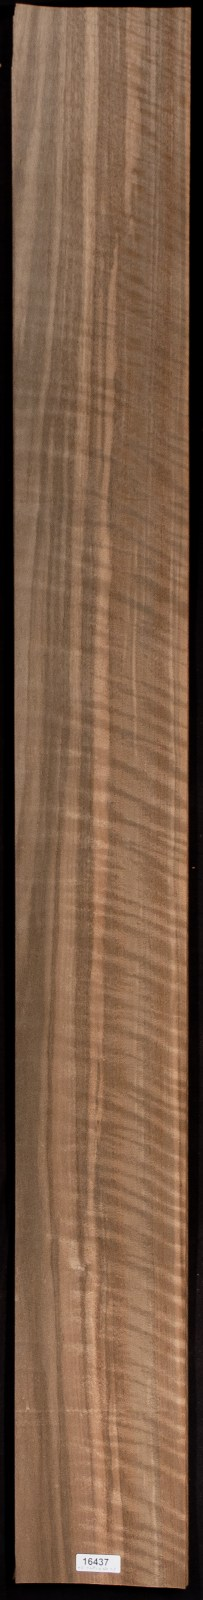 AAA Curly Walnut (Australian) Veneer Sheet